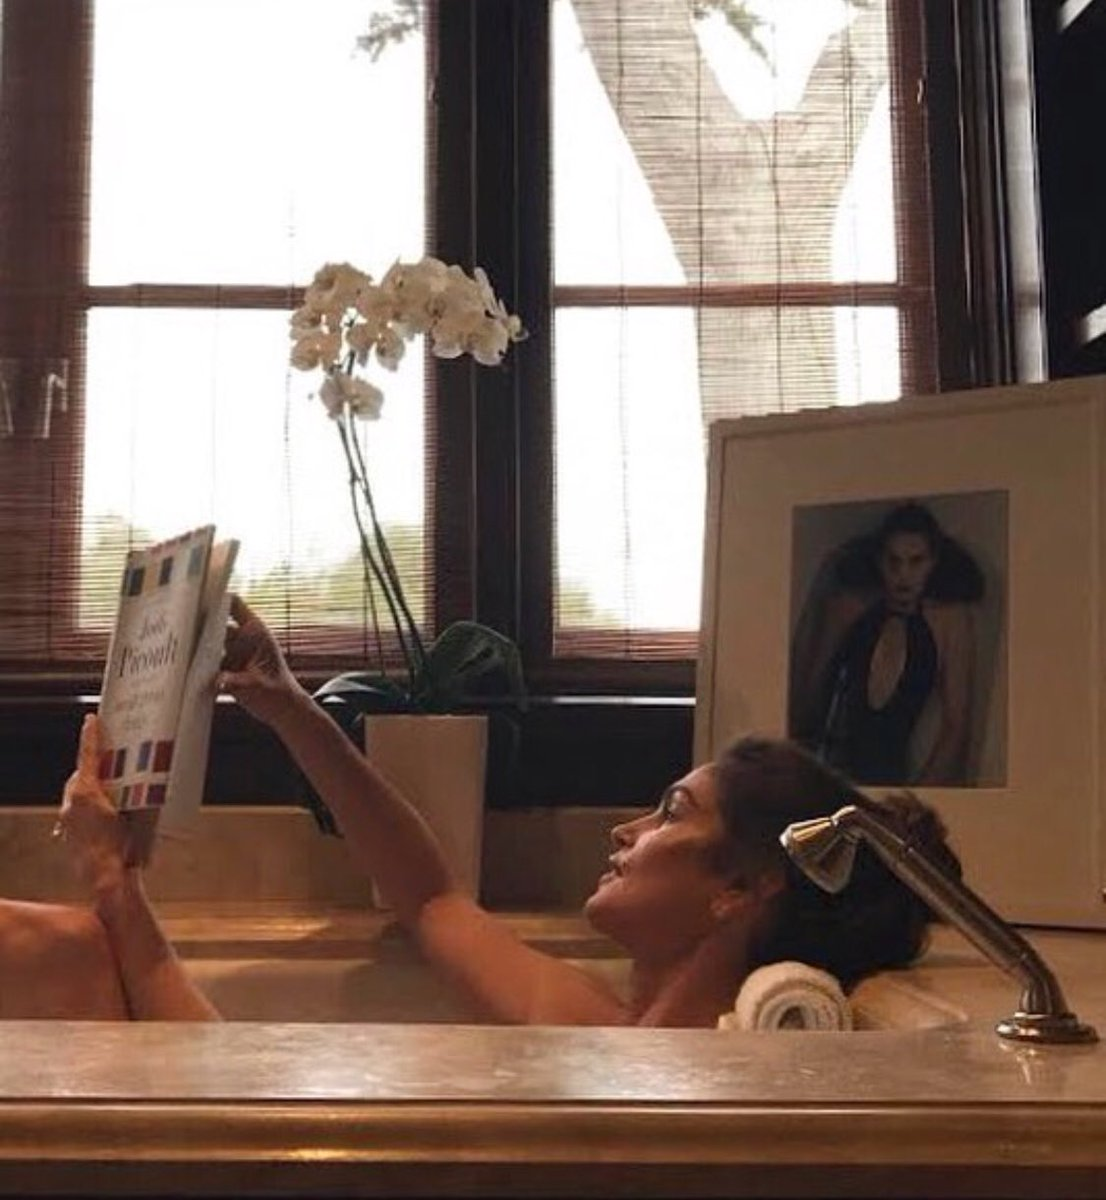 RT @MeaningfulBty: Spending the afternoon soaking in the bath like @CindyCrawford.  https://t.co/b9DqyfnywW https://t.co/45021q97ne